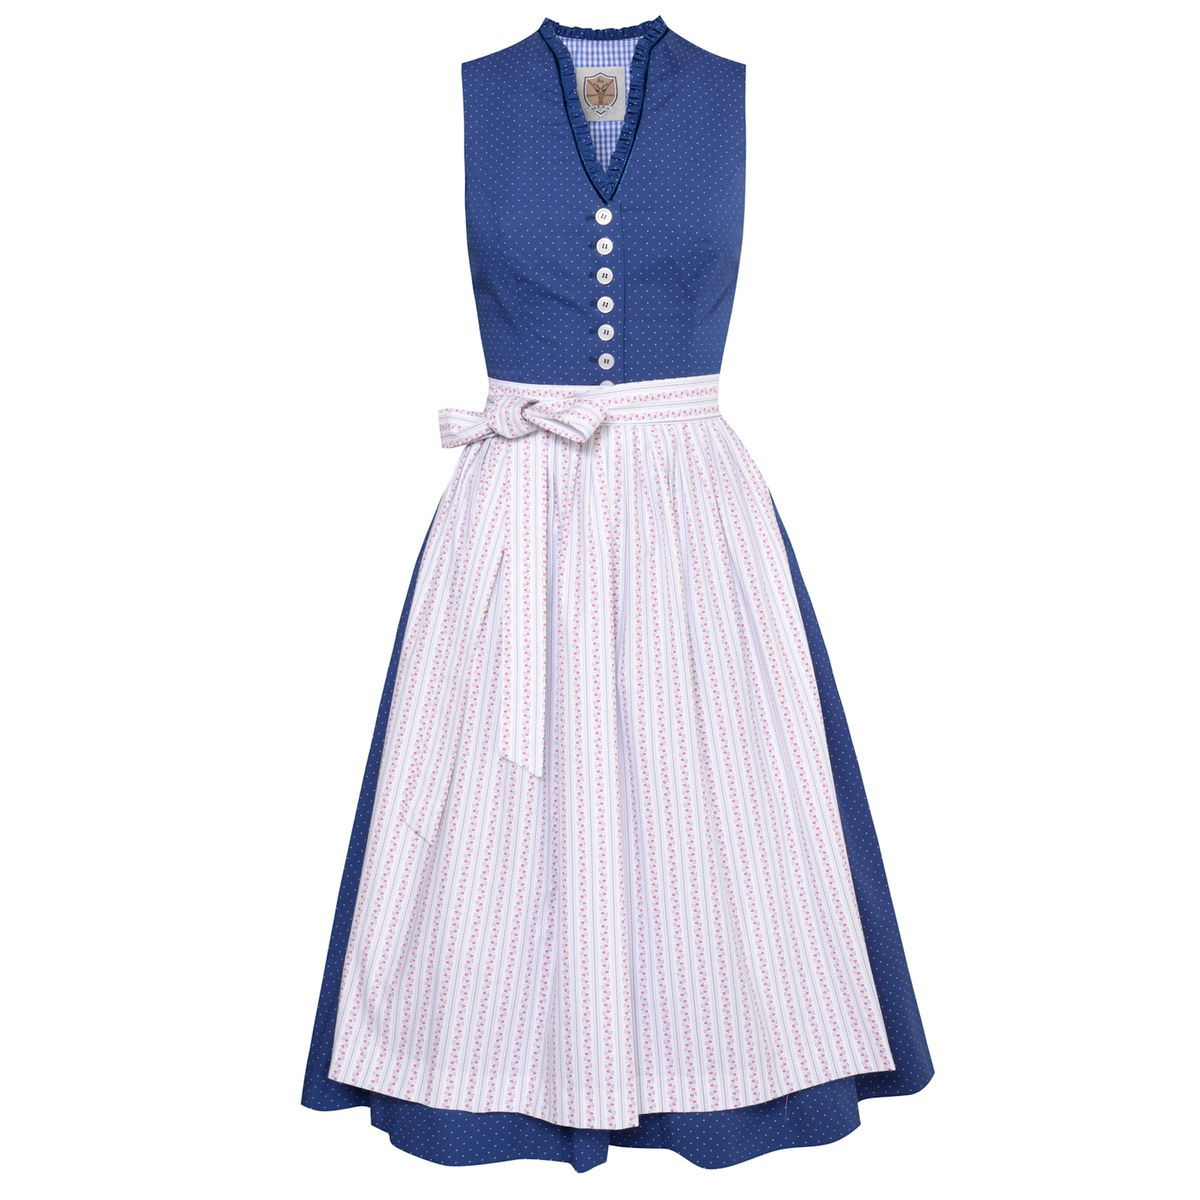 Midi Dirndl Melisa in Blau von Apple of my Eye